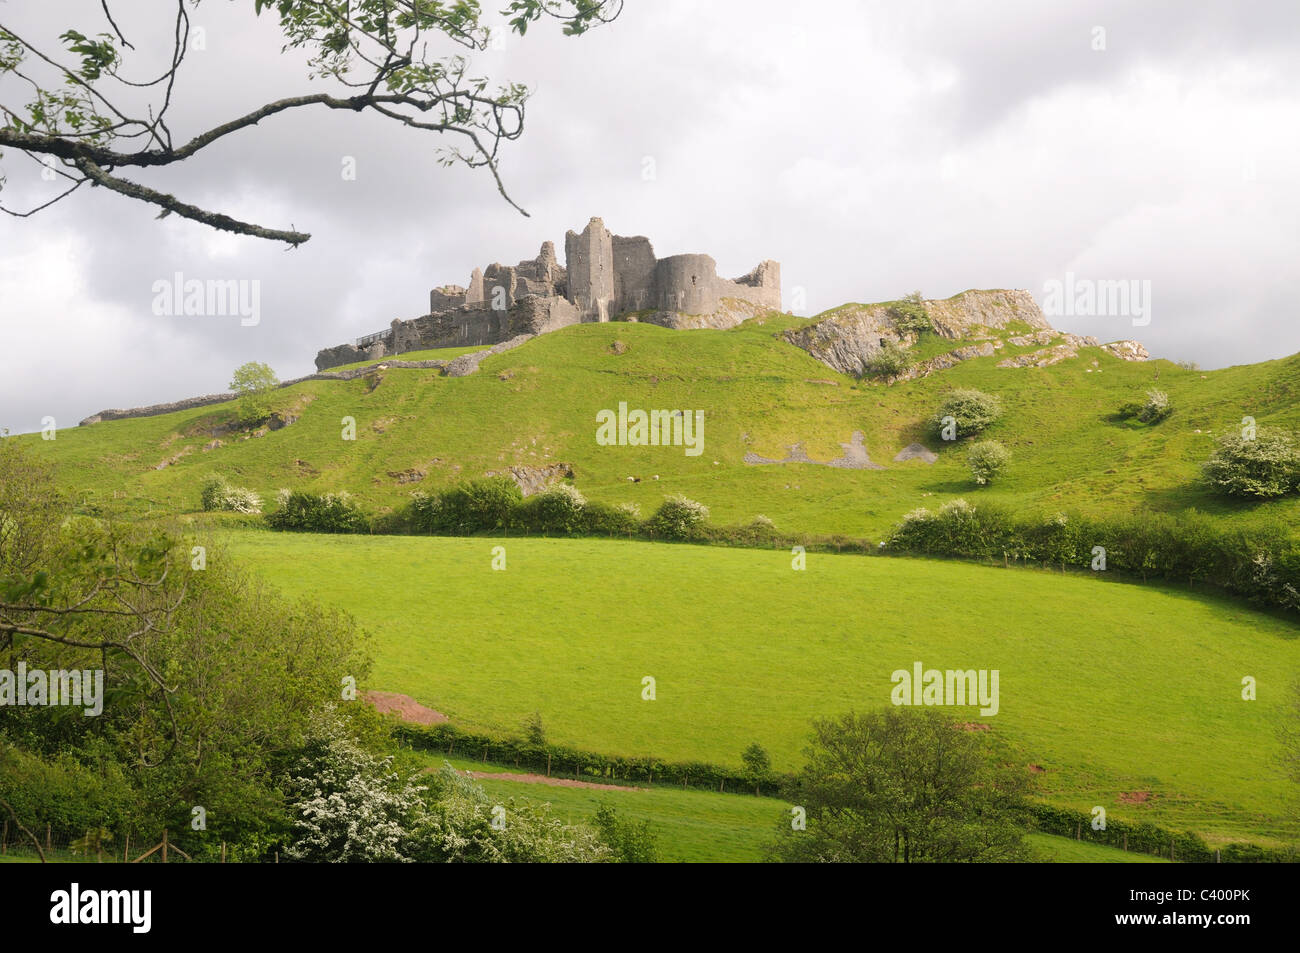 Carreg Cennen Castle, near Trap, Carmarthenshire, Wales - Stock Image